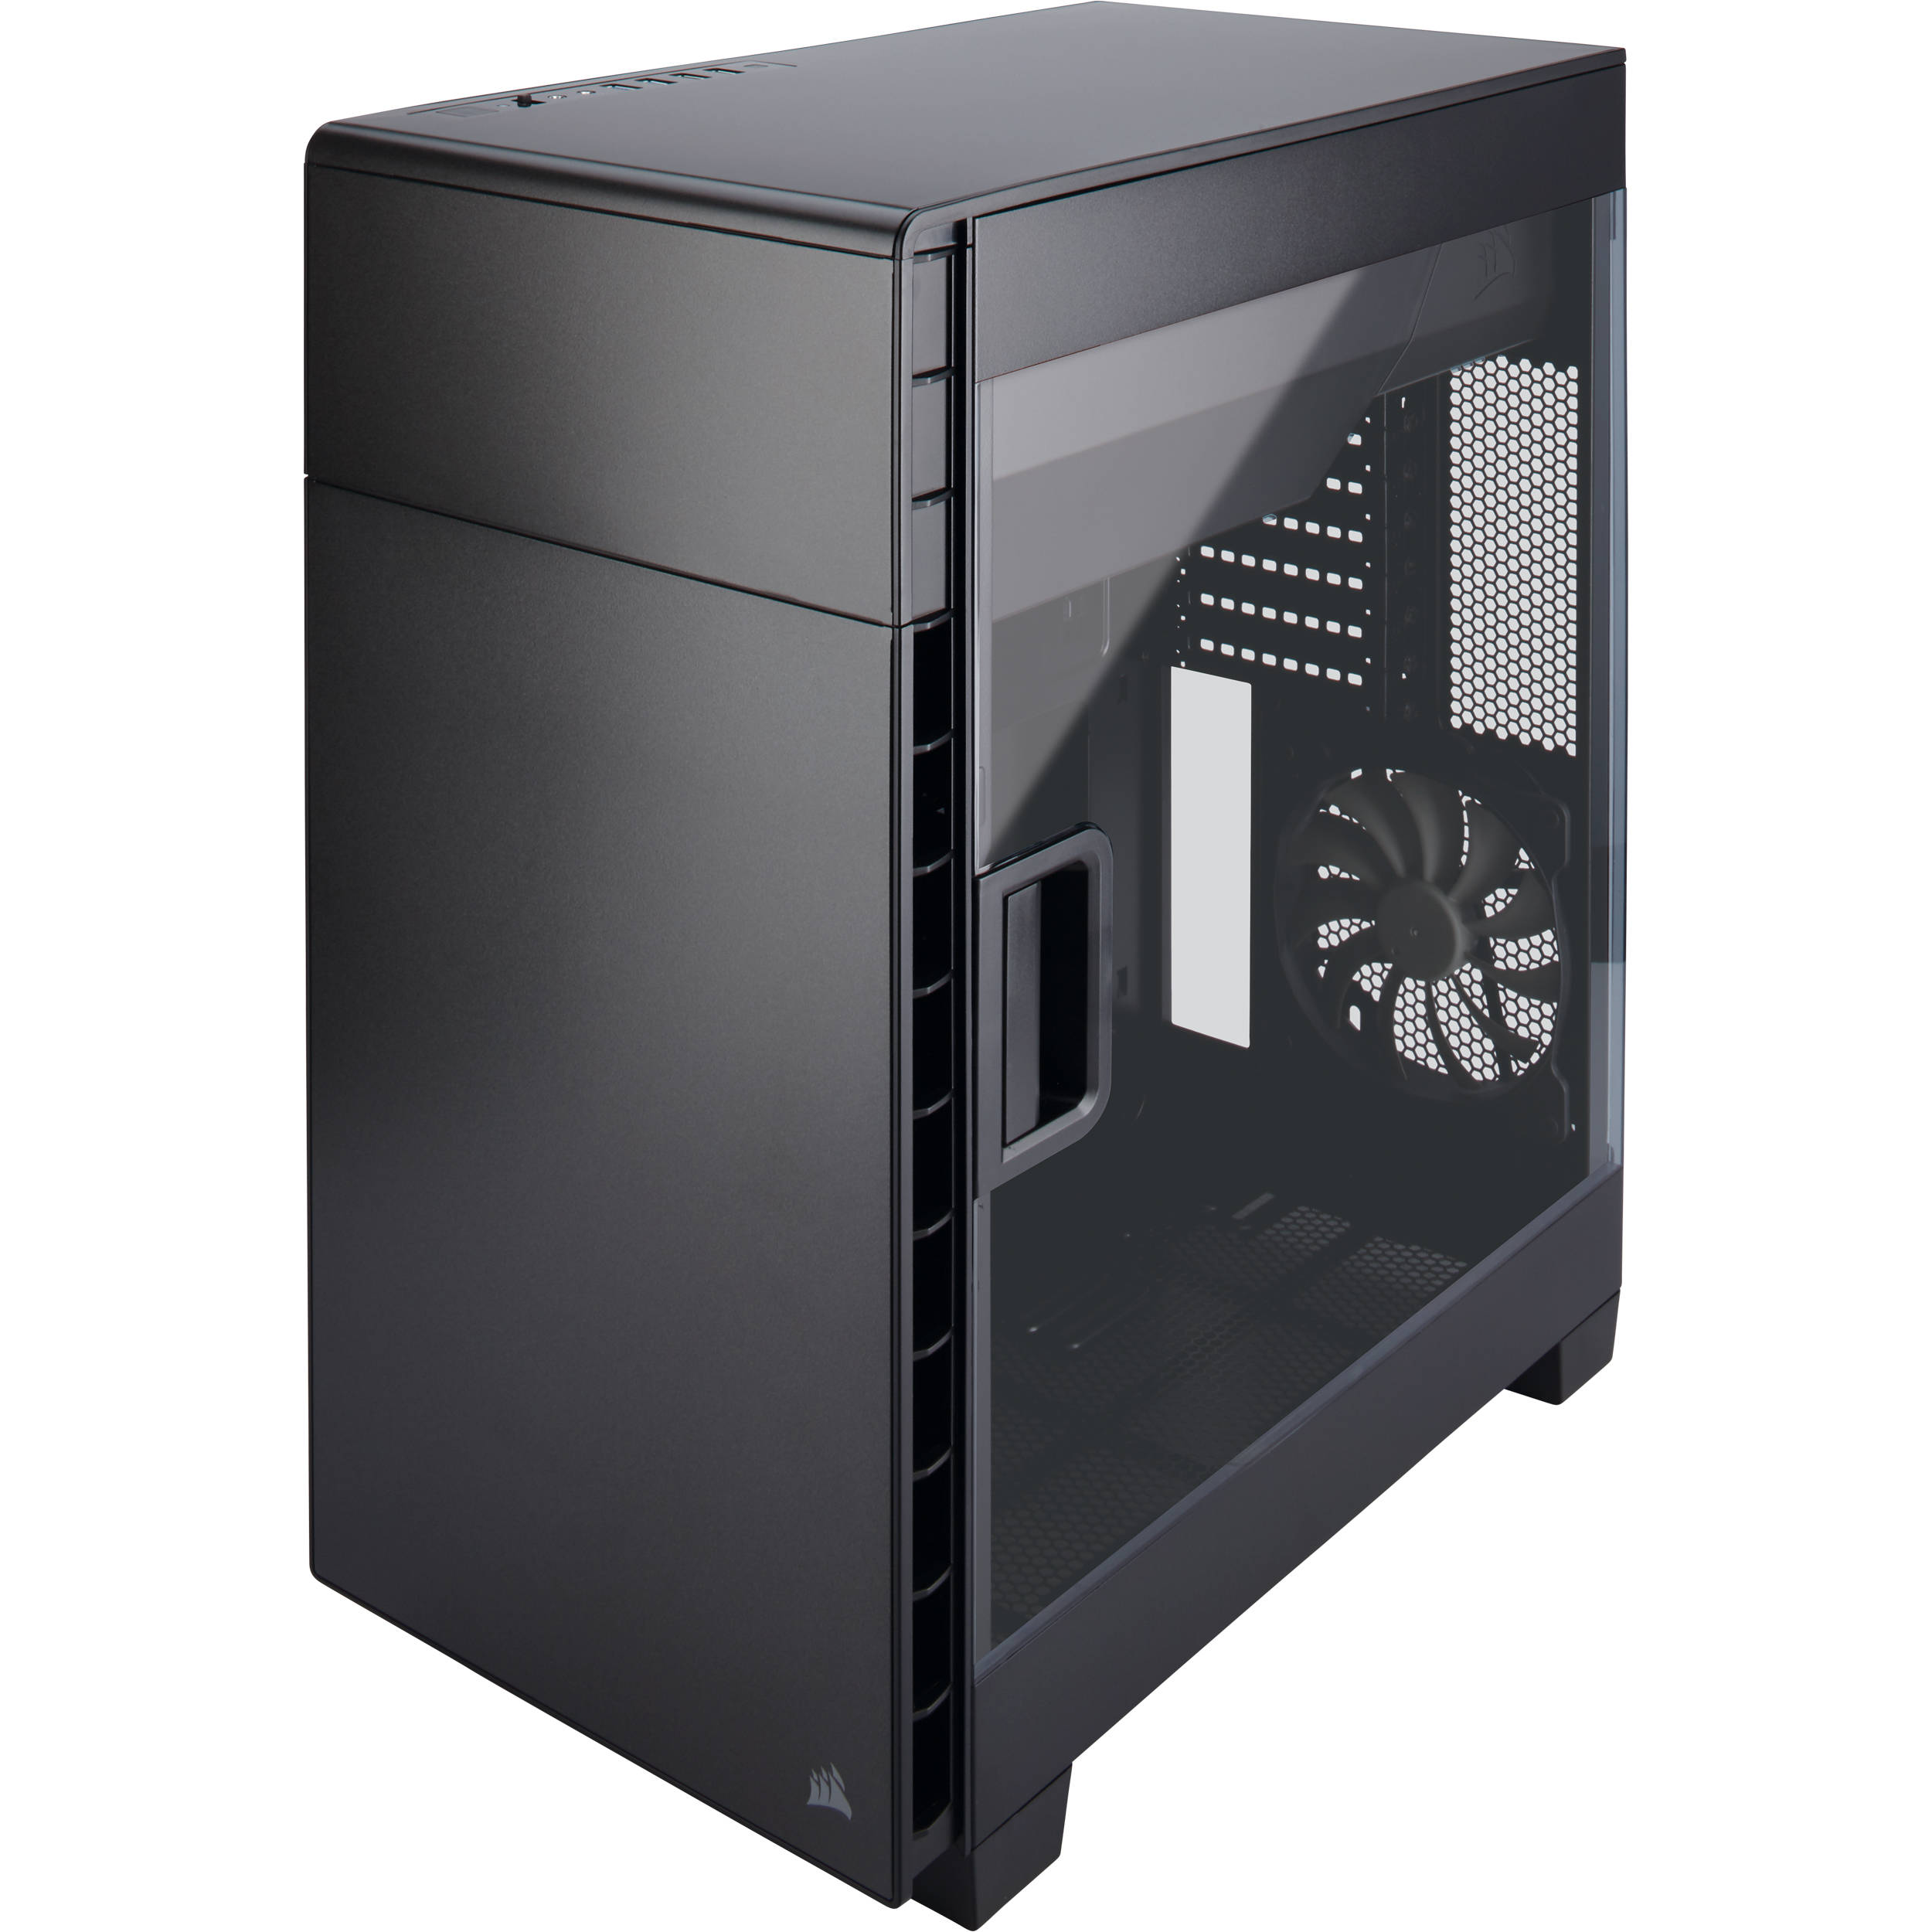 Case CORSAIR Carbide Series™ 600C